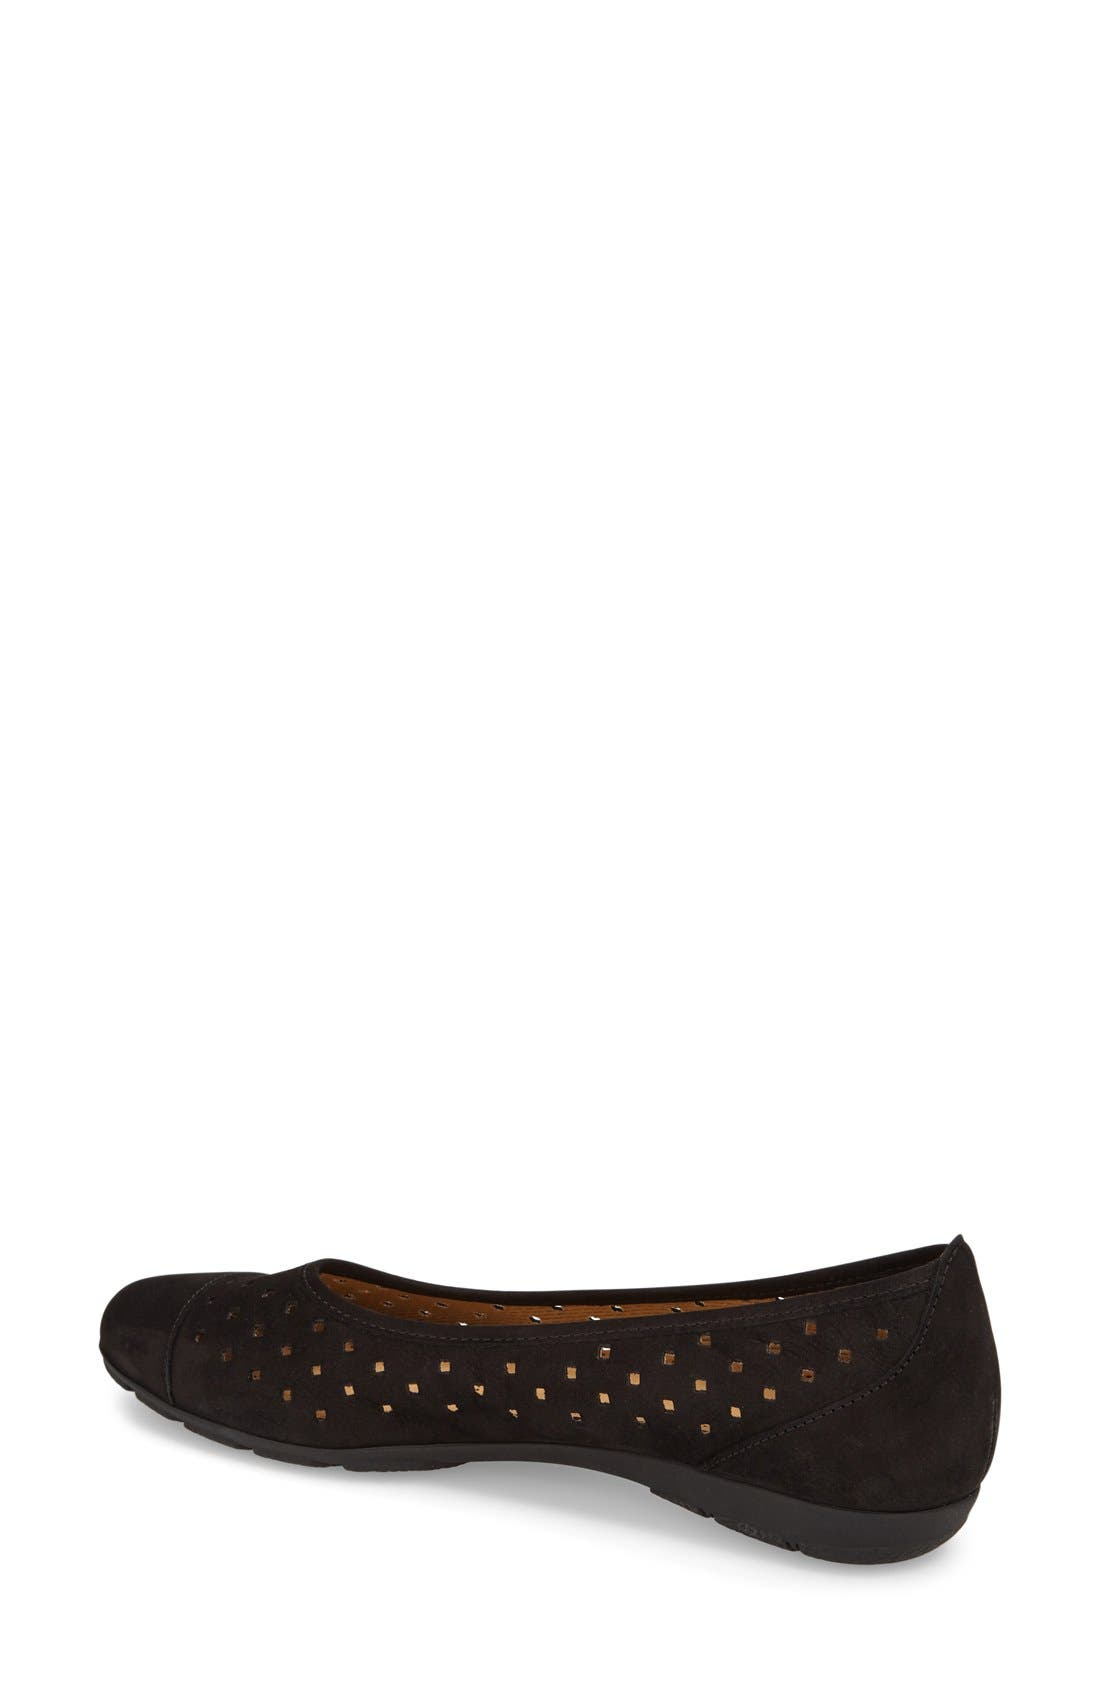 Perforated Ballet Flat,                             Alternate thumbnail 2, color,                             Black Nubuck